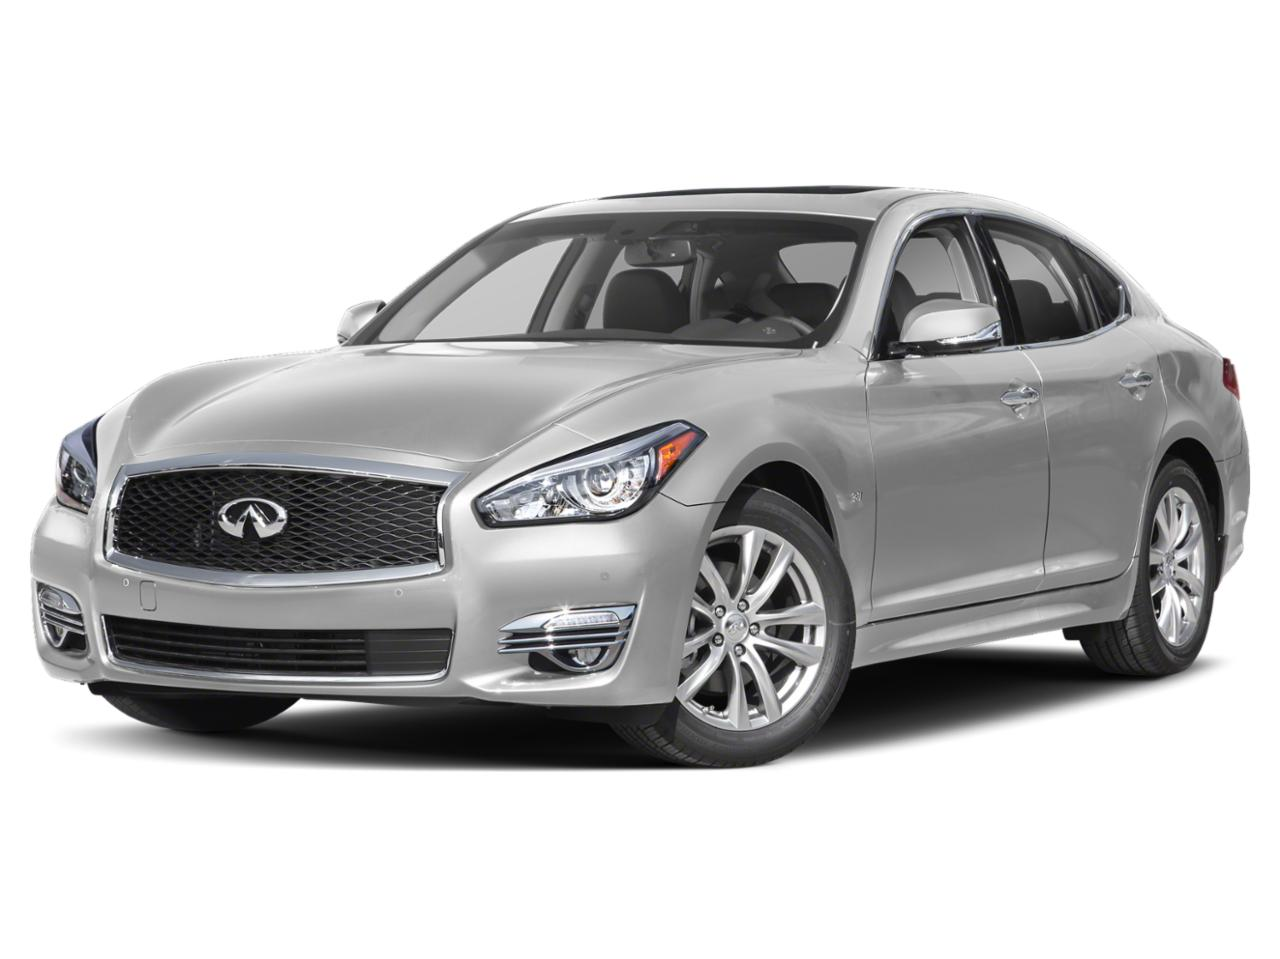 2019 INFINITI Q70 Vehicle Photo in Bowie, MD 20716